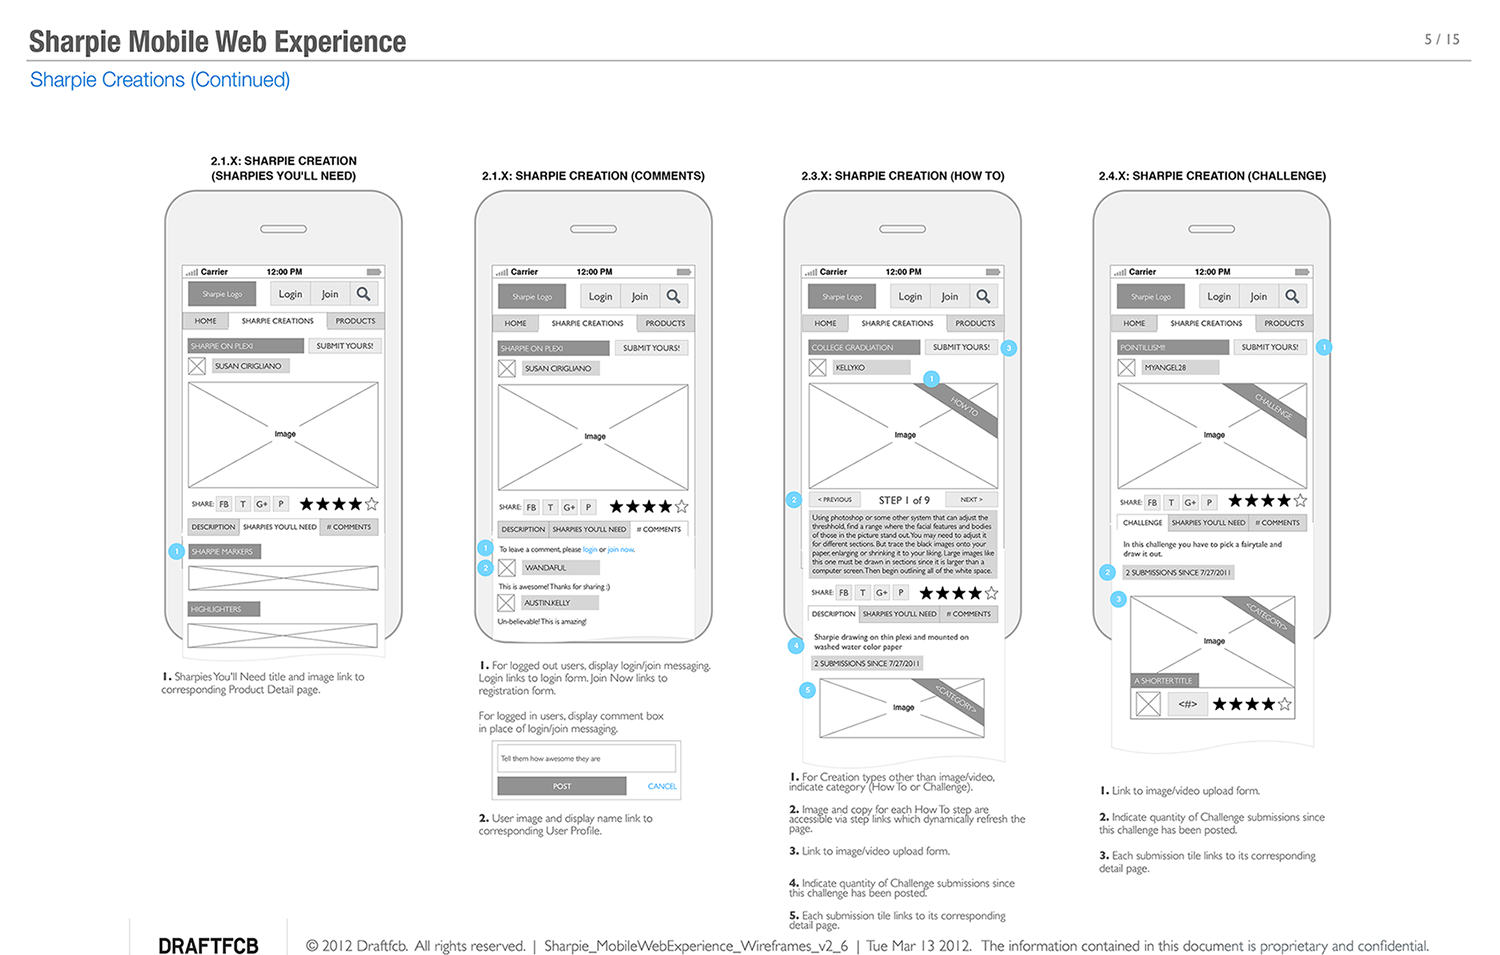 Sharpie_Mobile_Wireframes_v2_6-15_0004_5.png